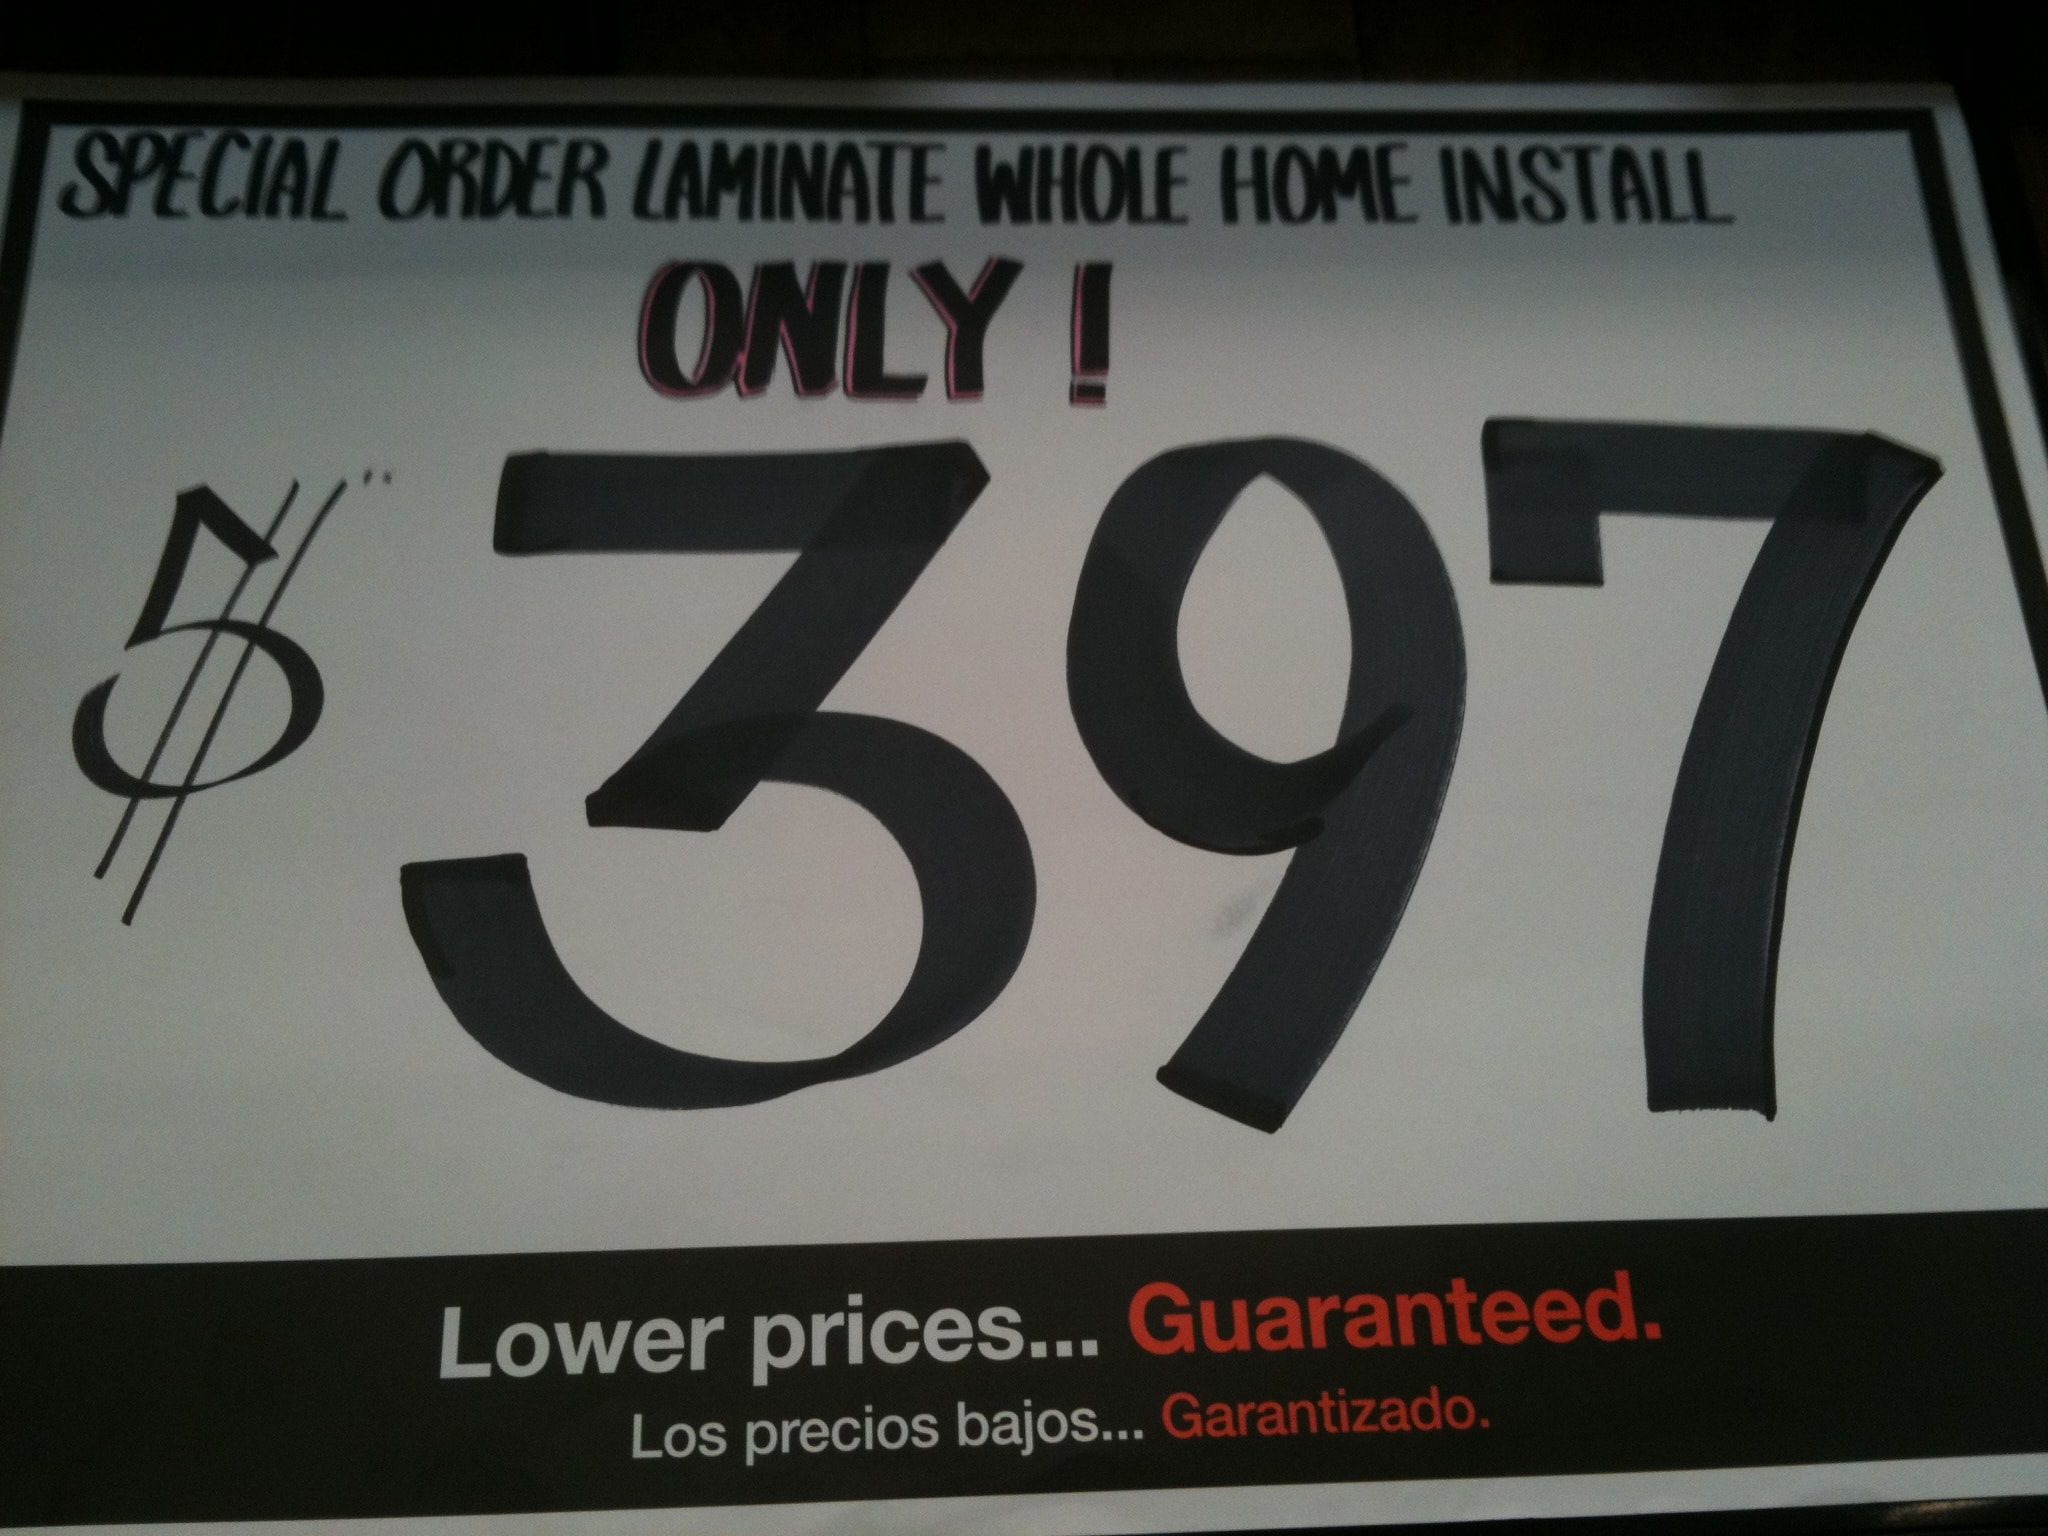 Whole house laminate installation at Home Depot Slickdeals